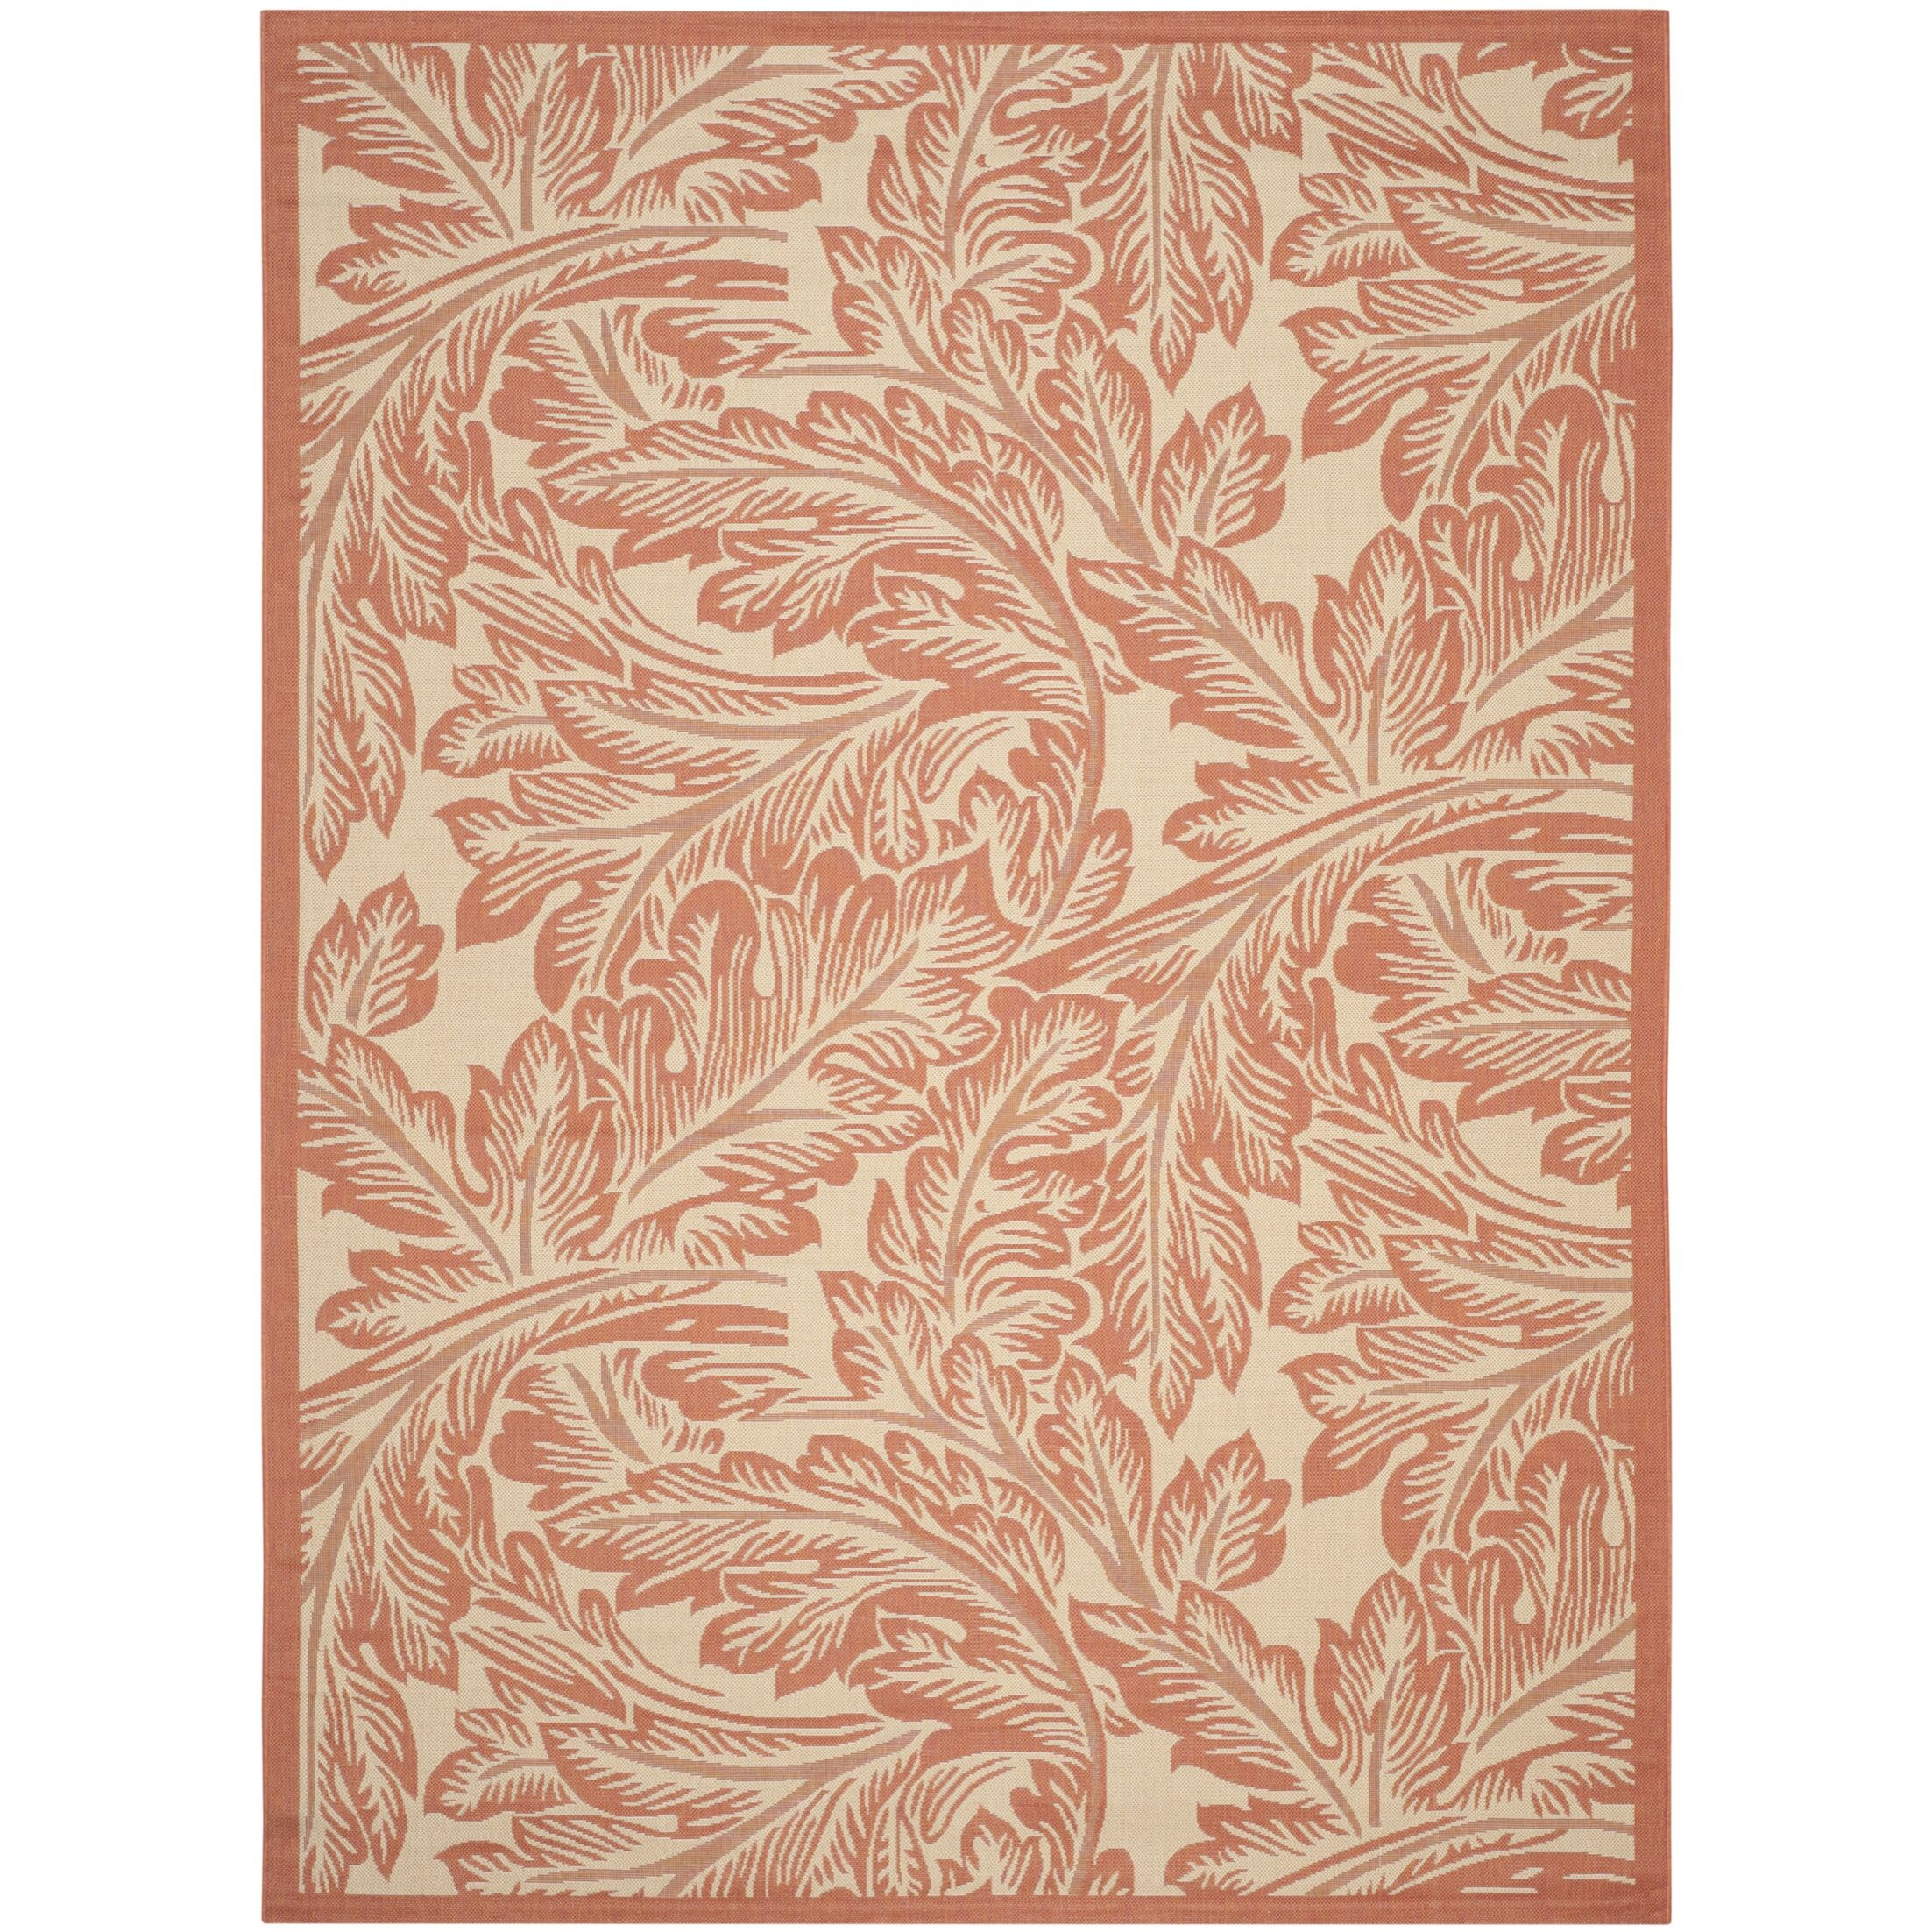 Amaryllis Natural/Terracotta Outdoor Area Rug Rug Size: Rectangle 6'7